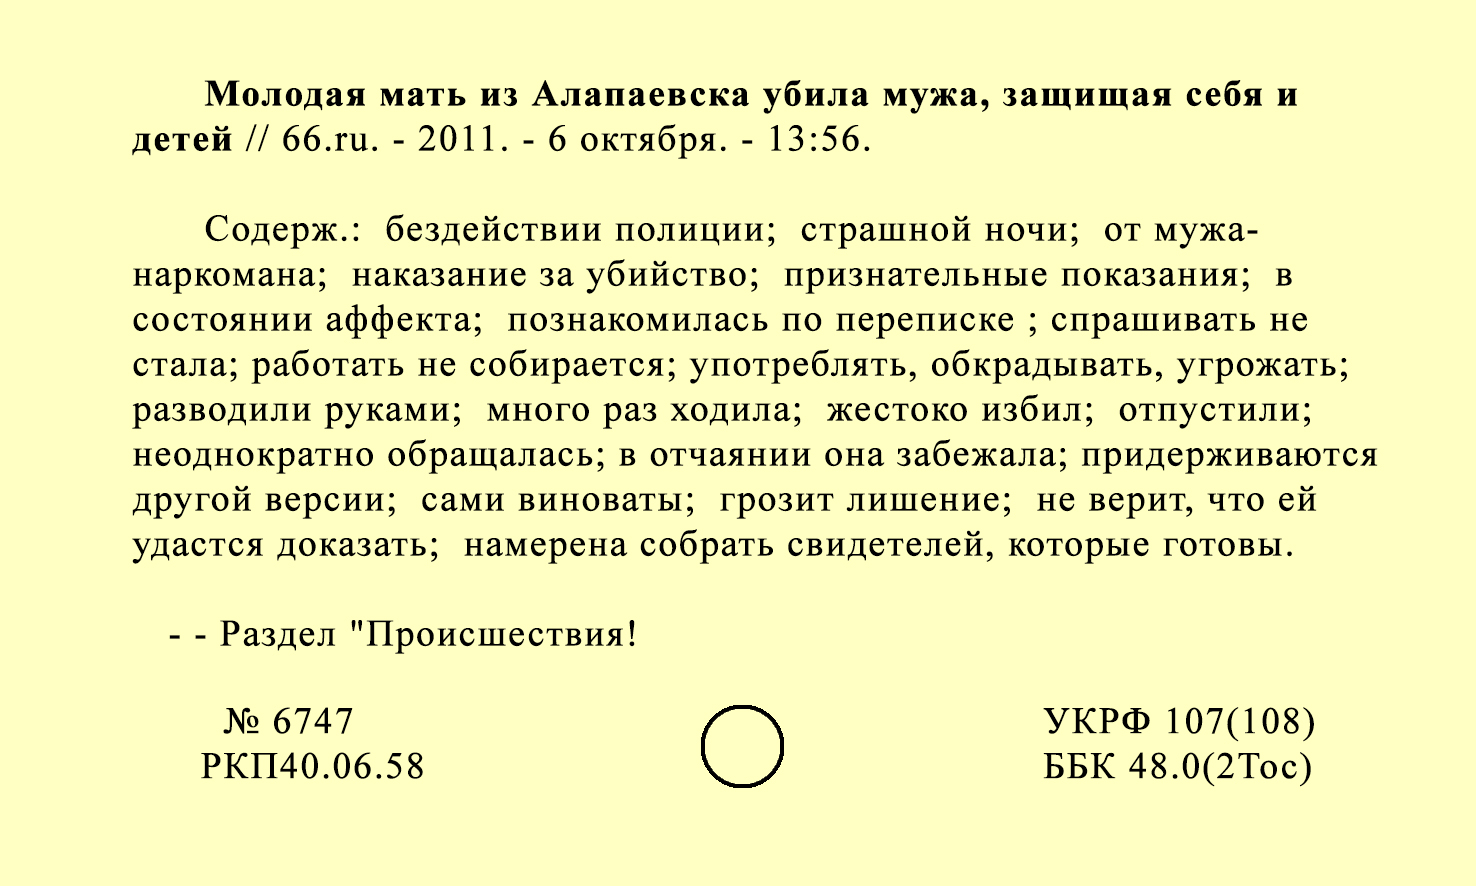 """""""Young mother from Alapaevsk killed her husband protecting herself and her children."""" Library Cards, 2017"""